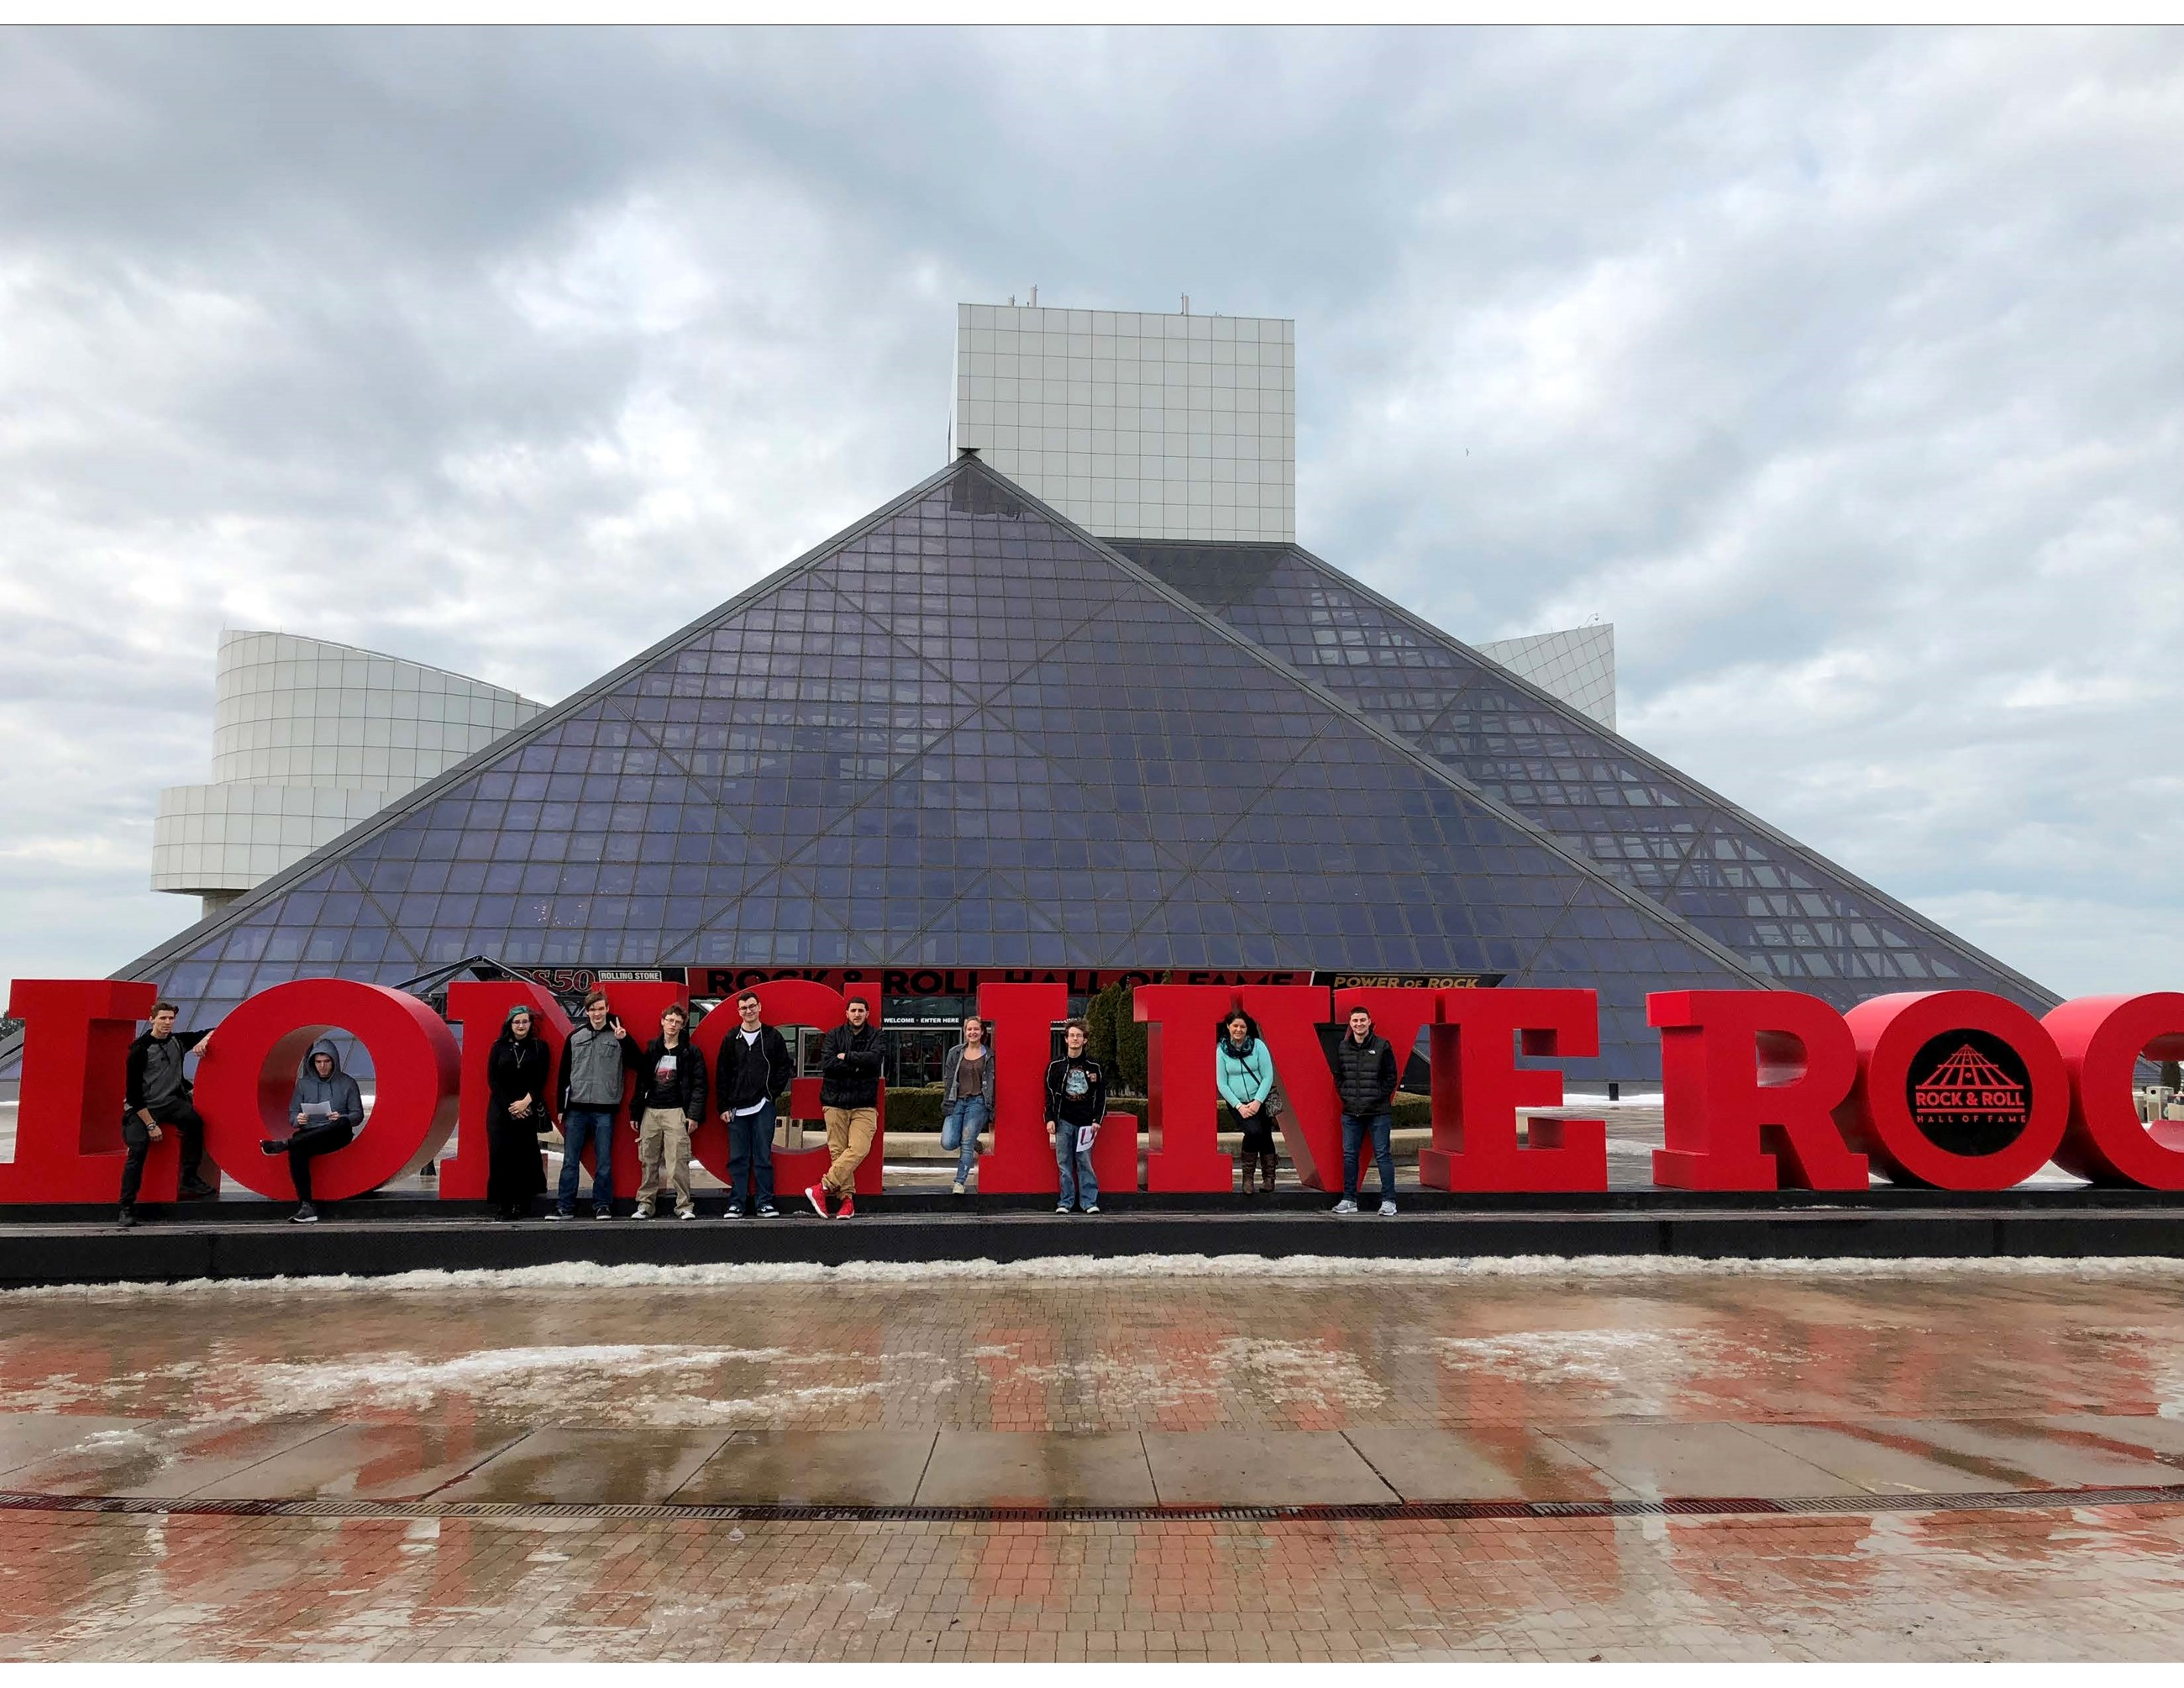 Students at Rock and Roll Hall of Fame